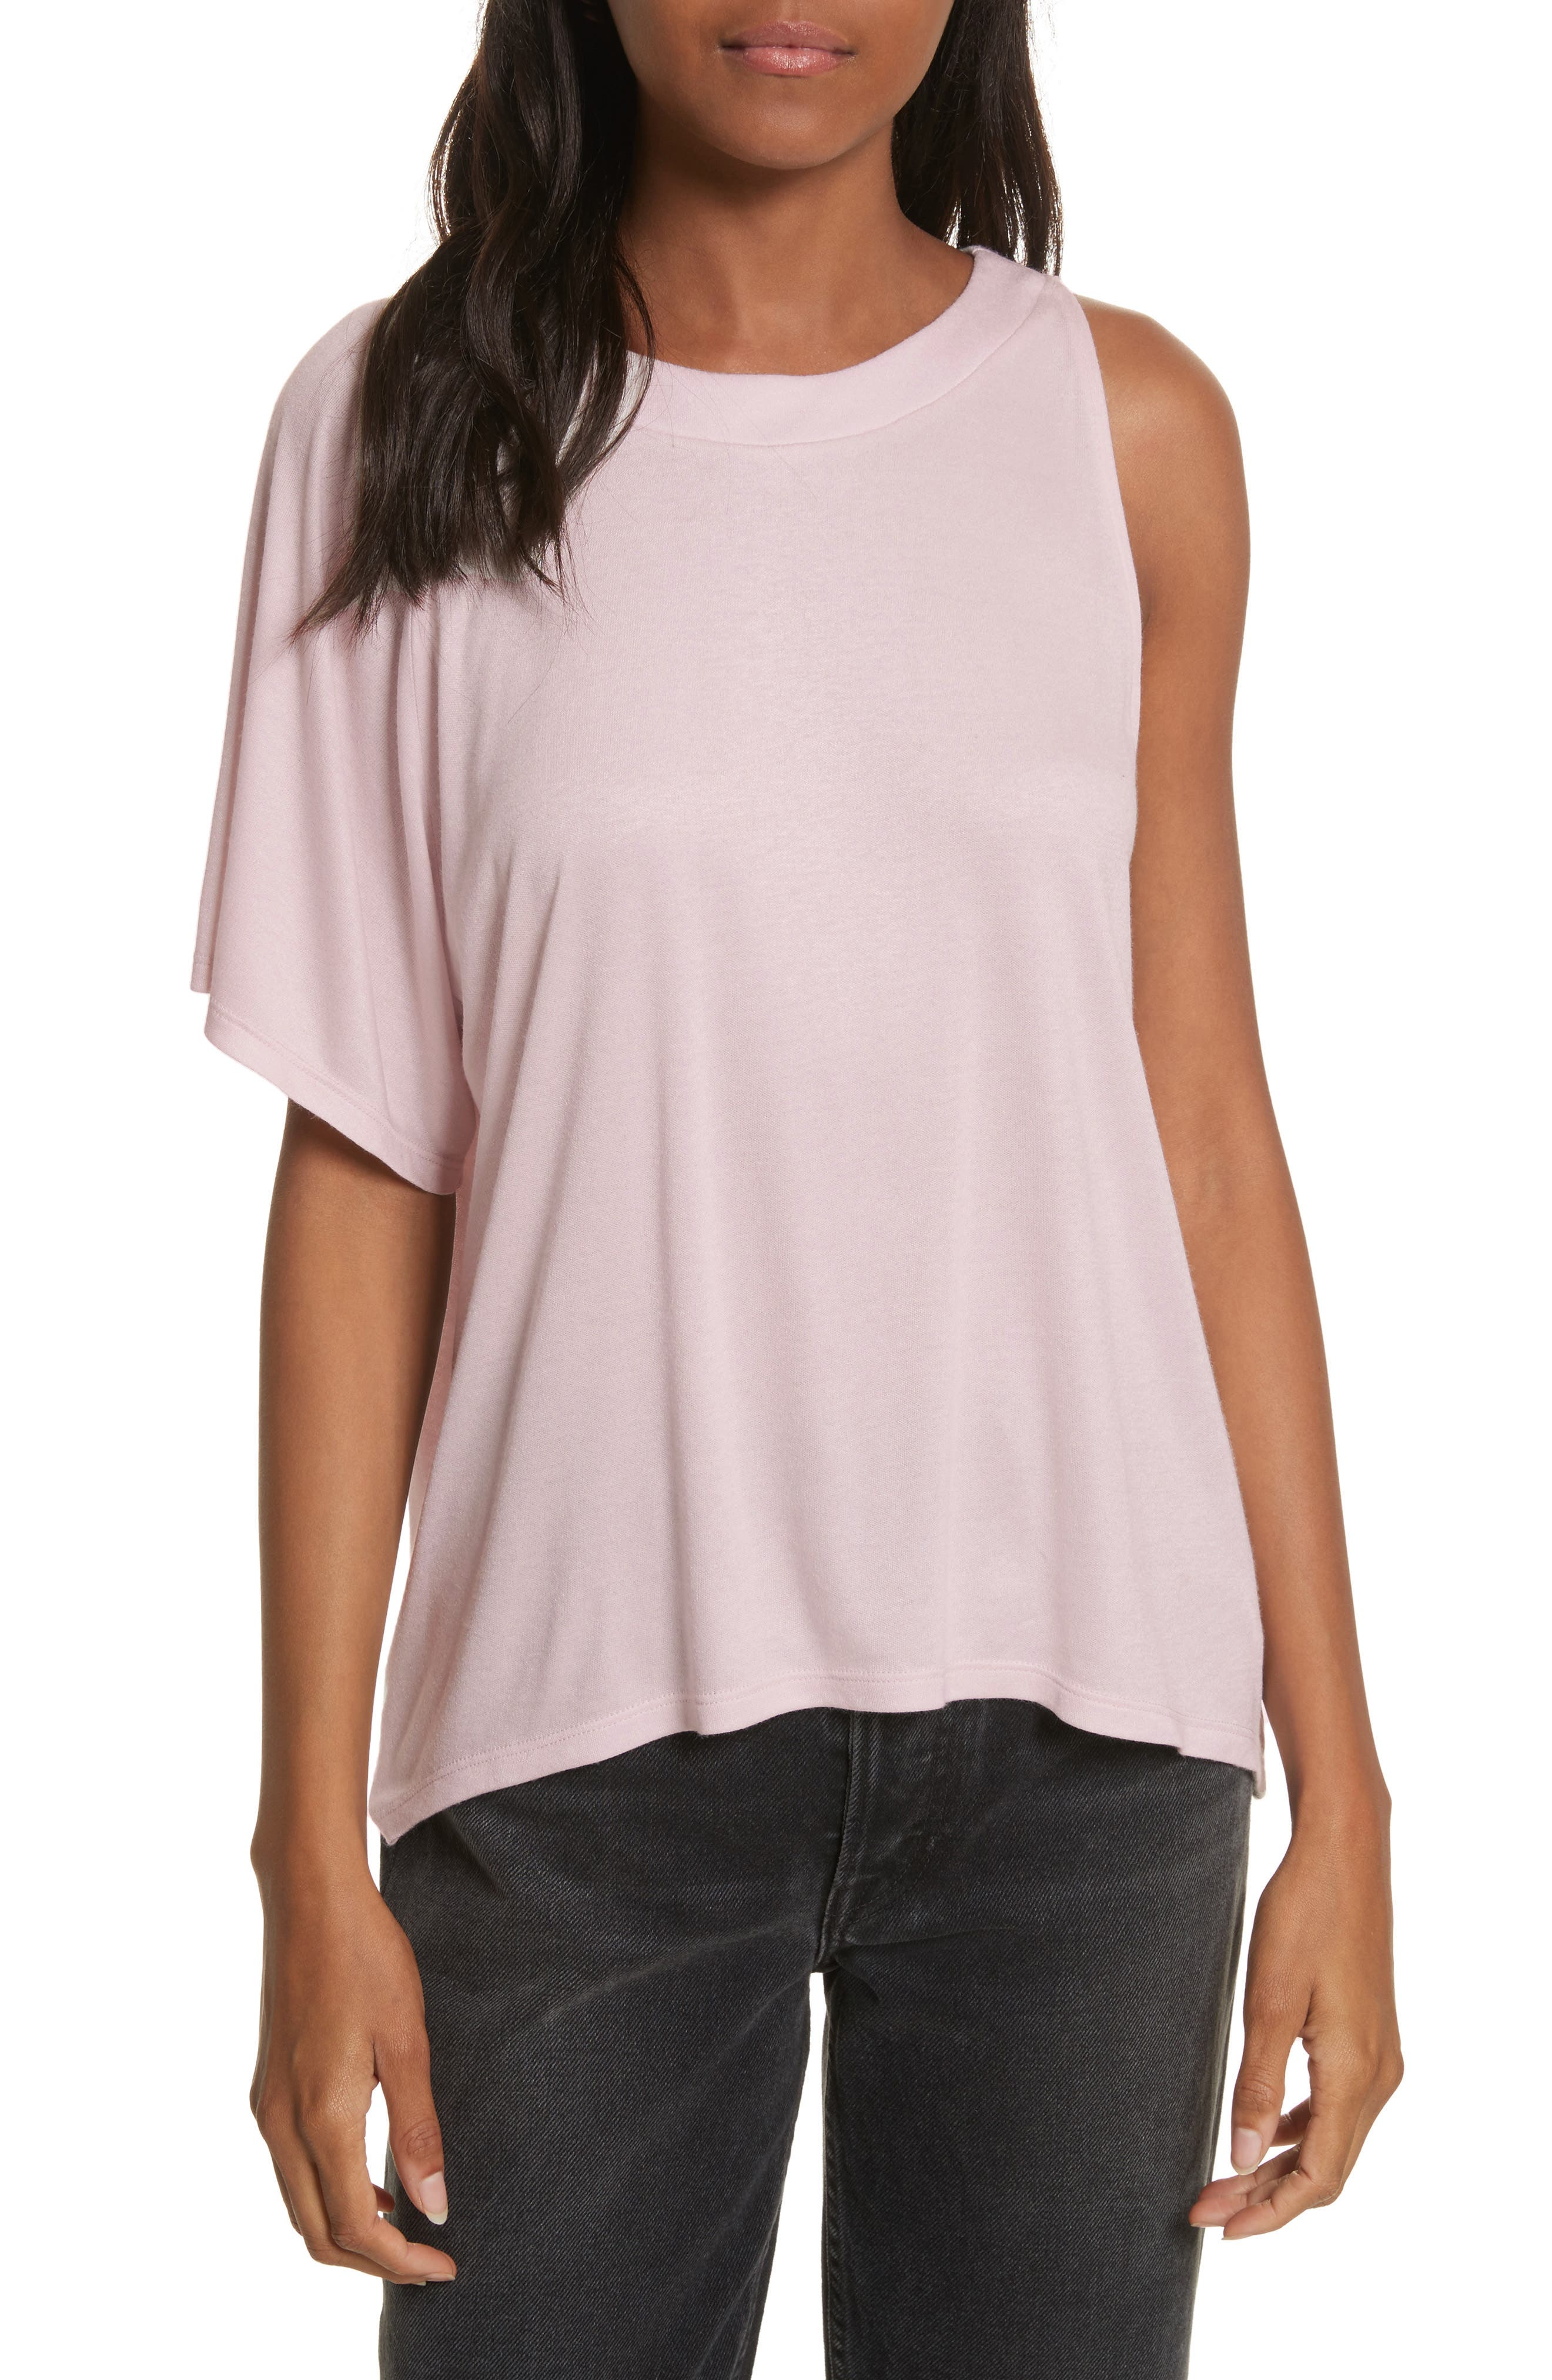 Twenty Willow Shine Jersey One-Shoulder Top